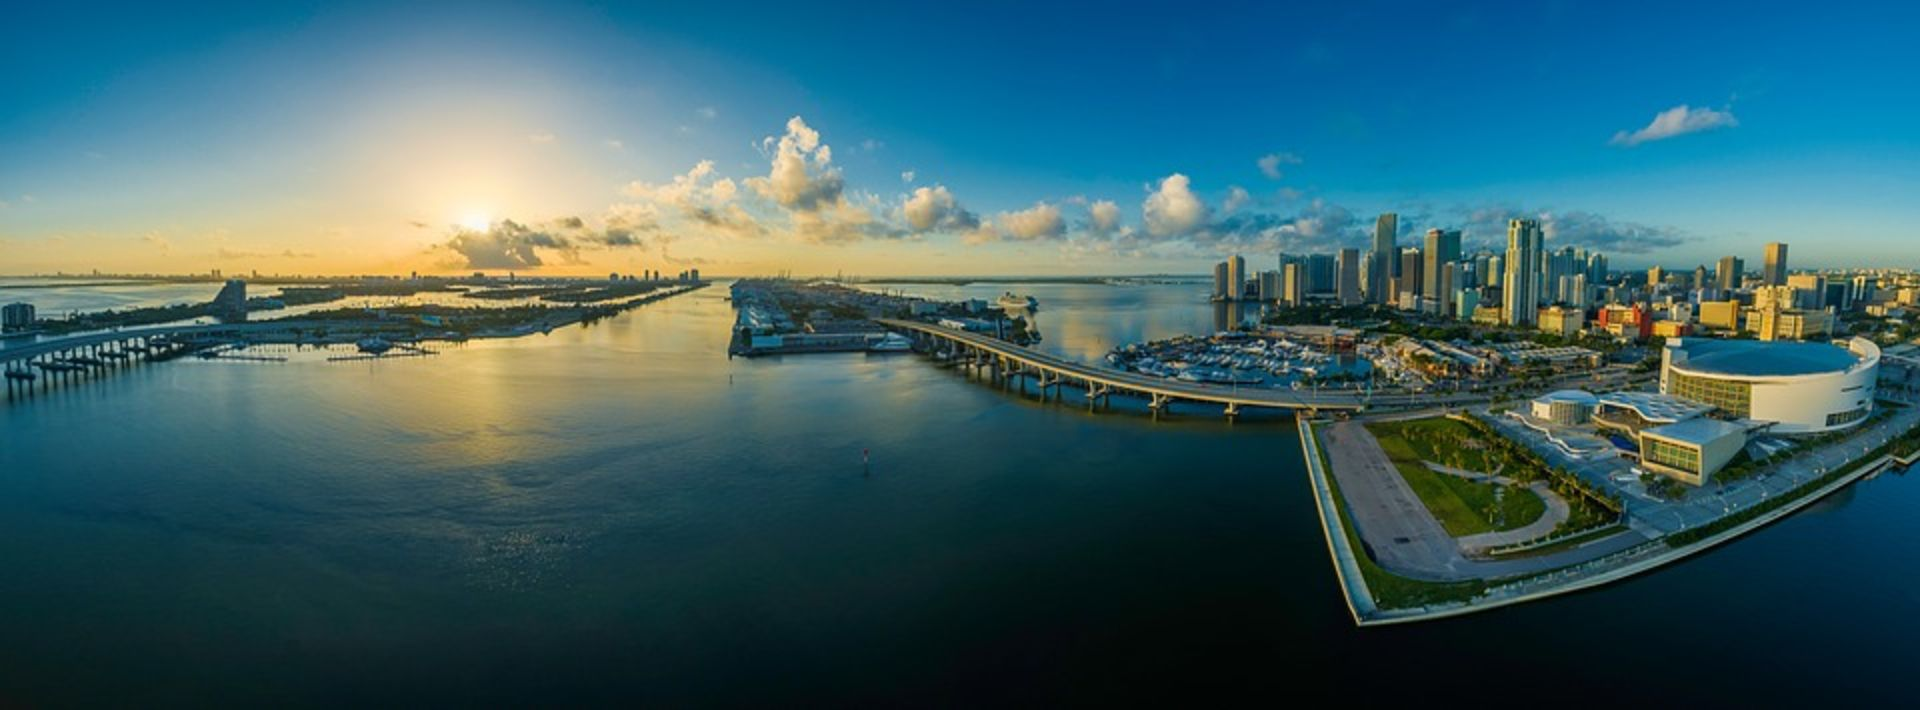 Why invest in Florida Real Estate in 2019?